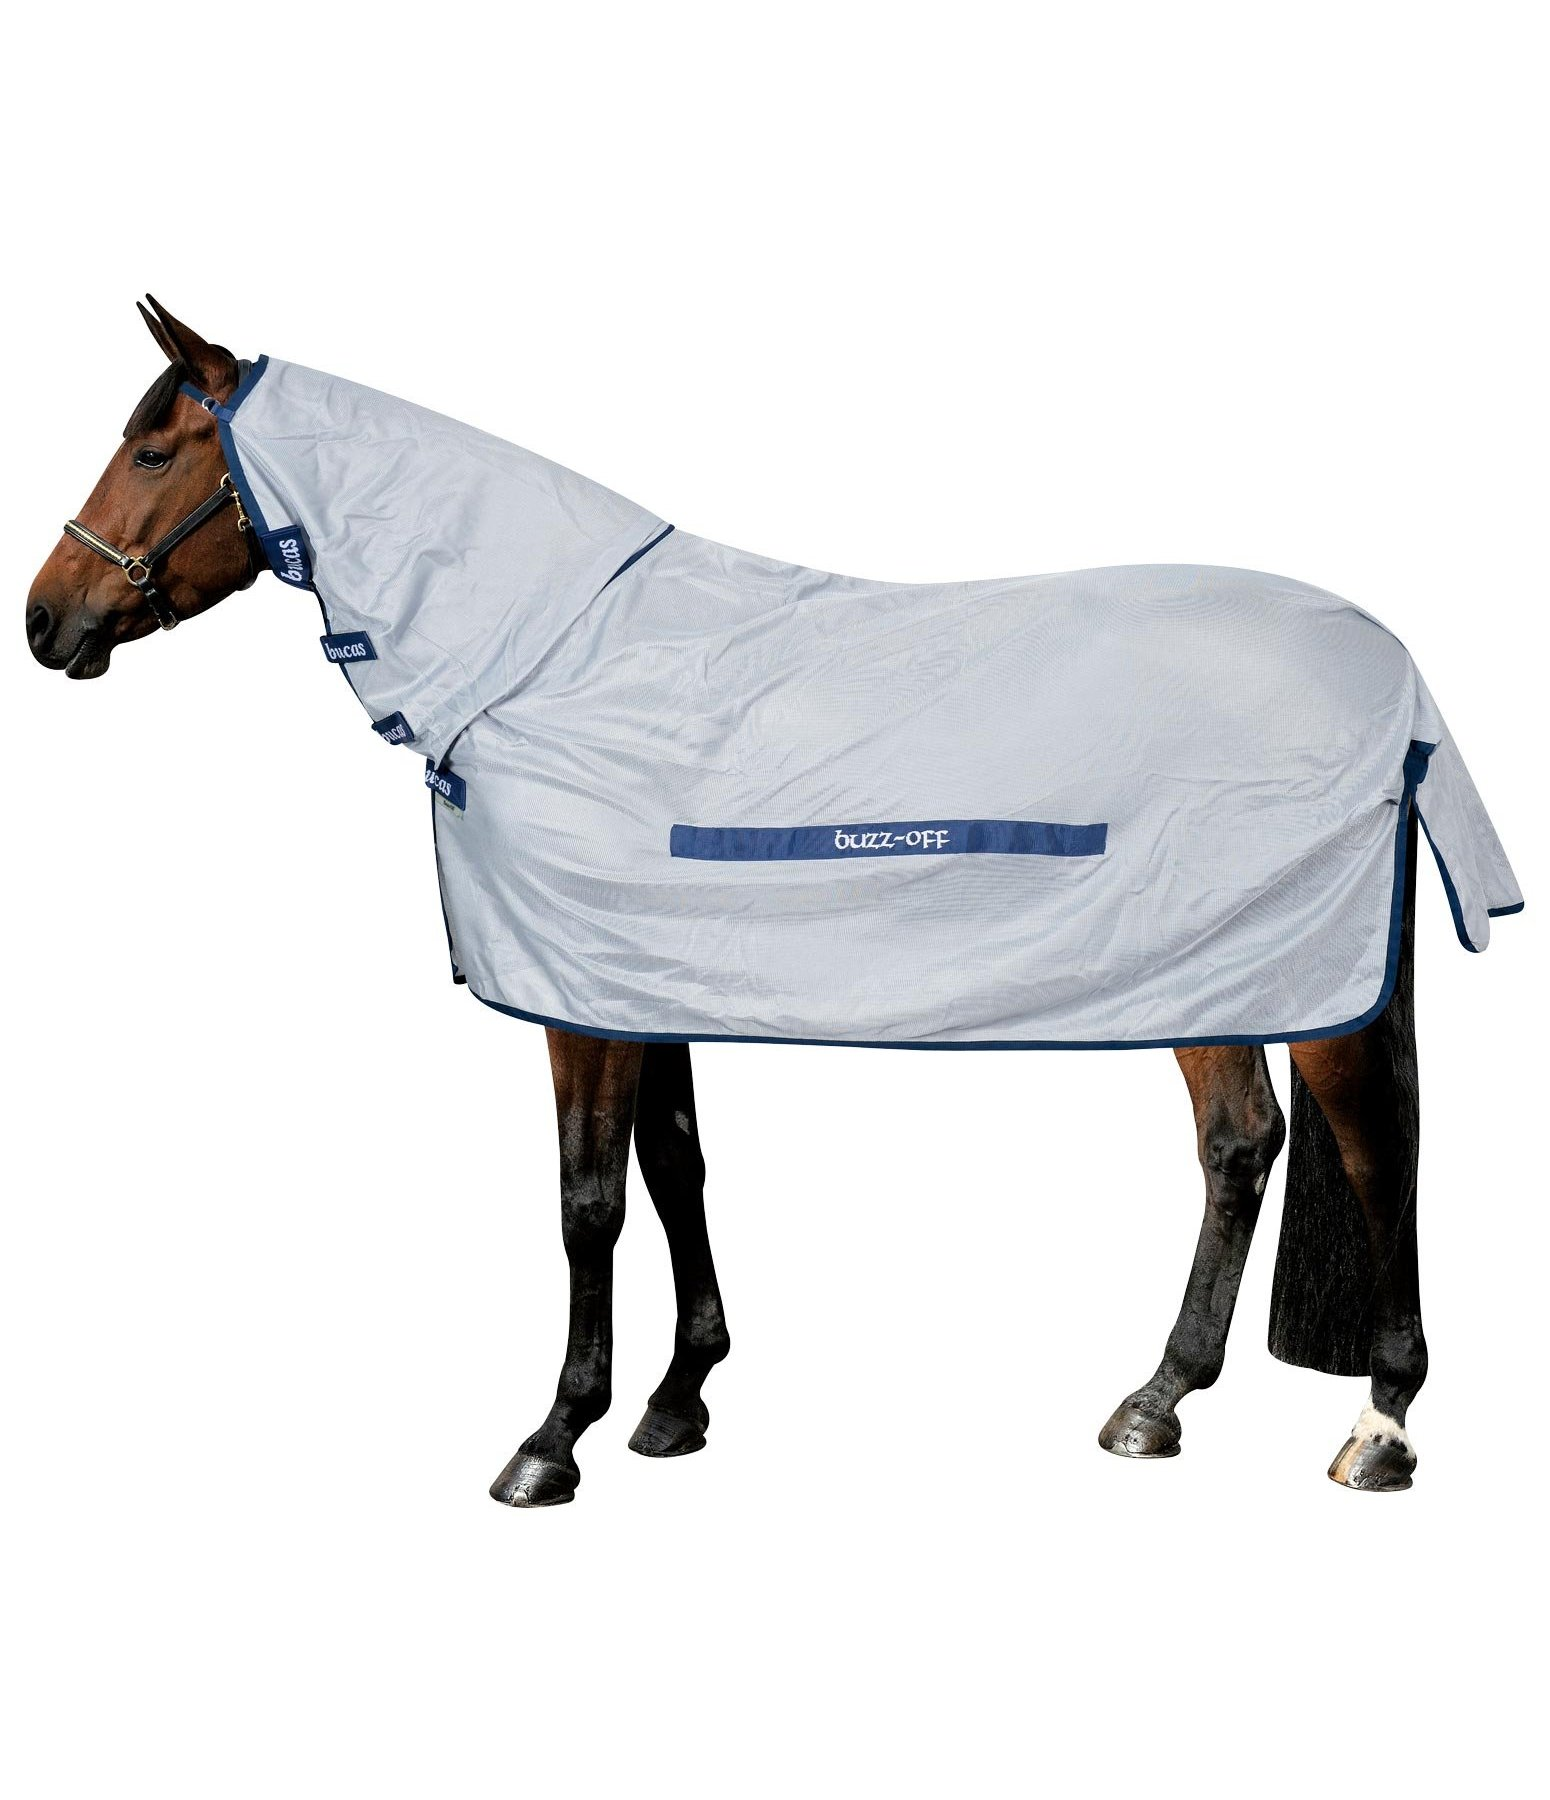 Buzz-Off Full Neck Fly Rug, UV 70+